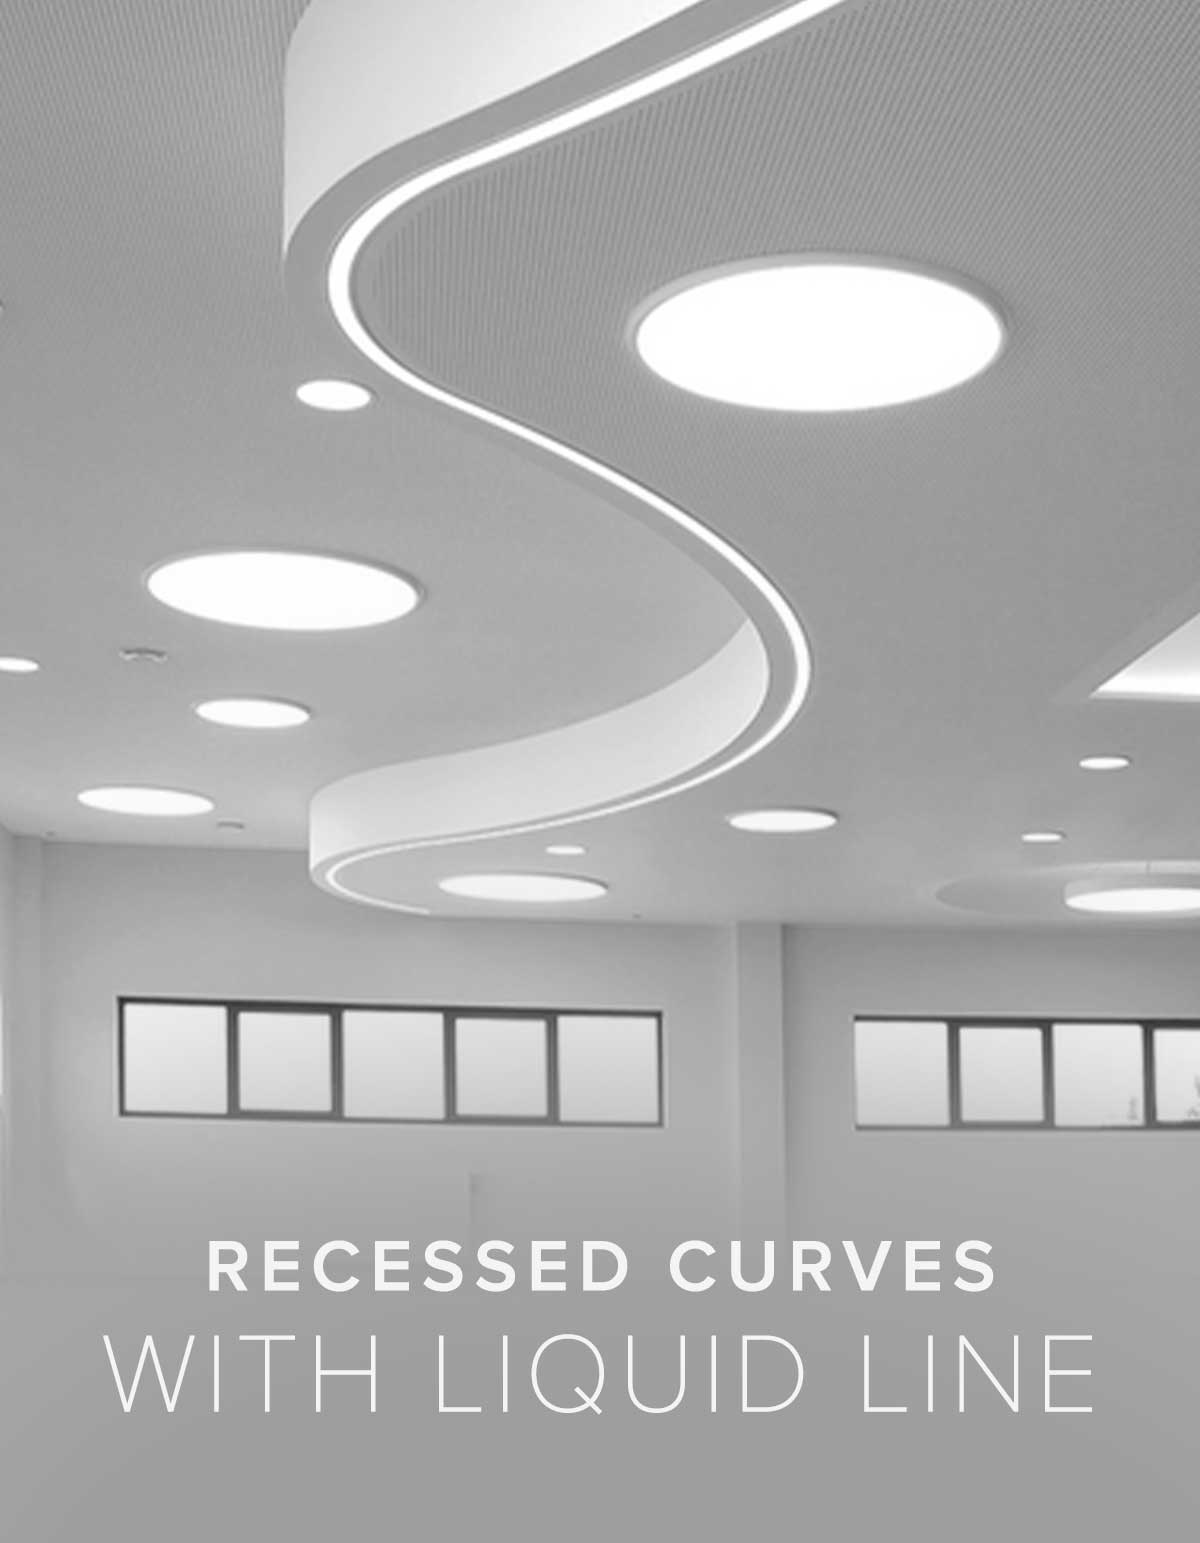 Recessed Curves with Liquid Line